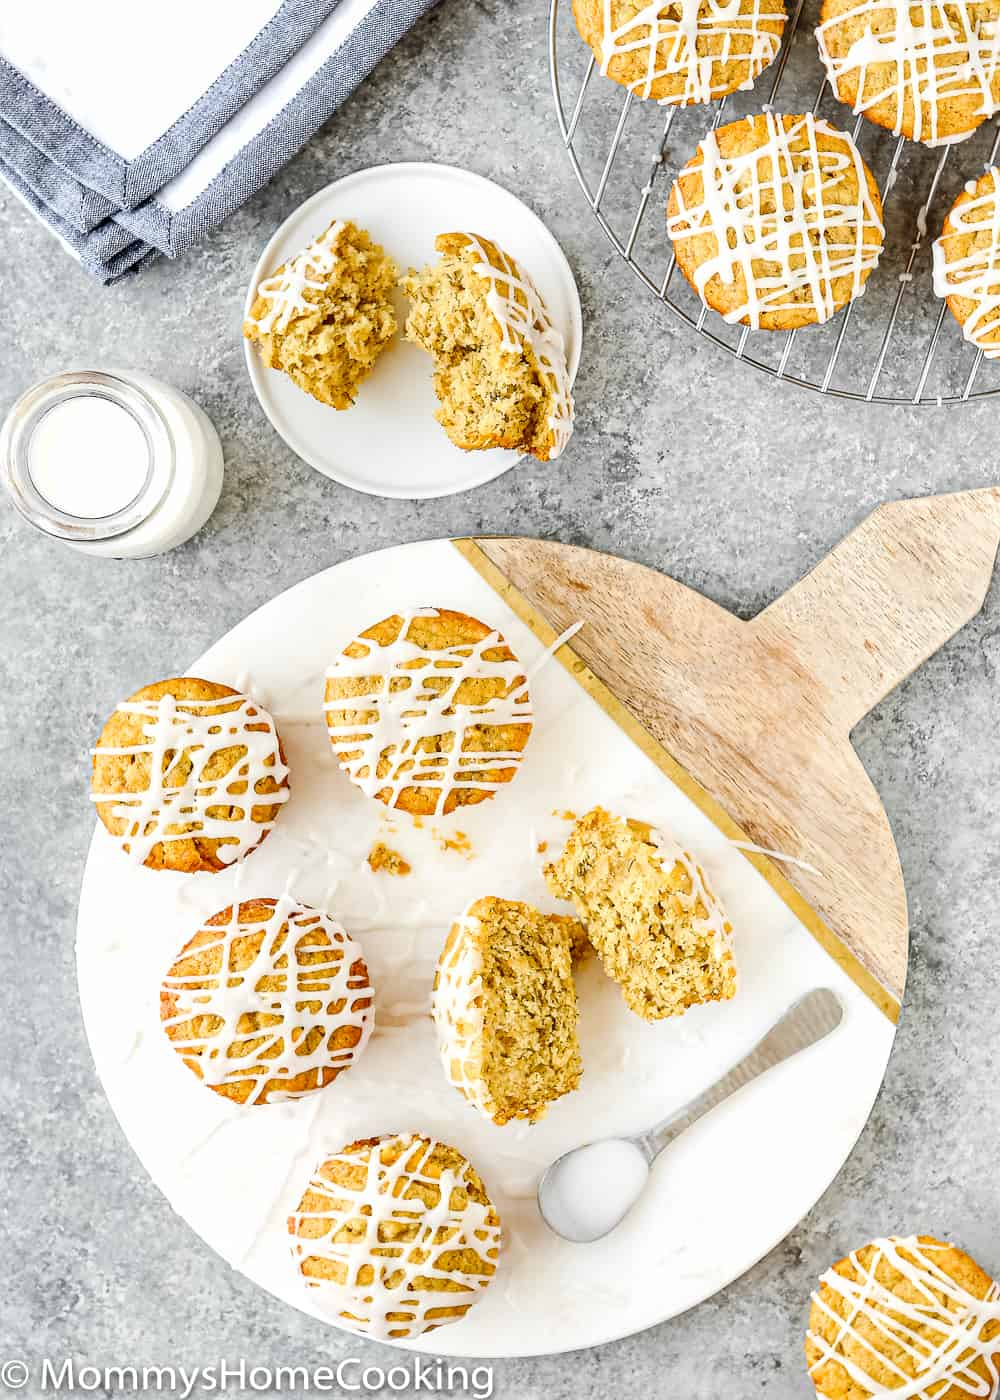 Eggless Banana Bread muffins drizzled with sugar glaze and a glass of milk